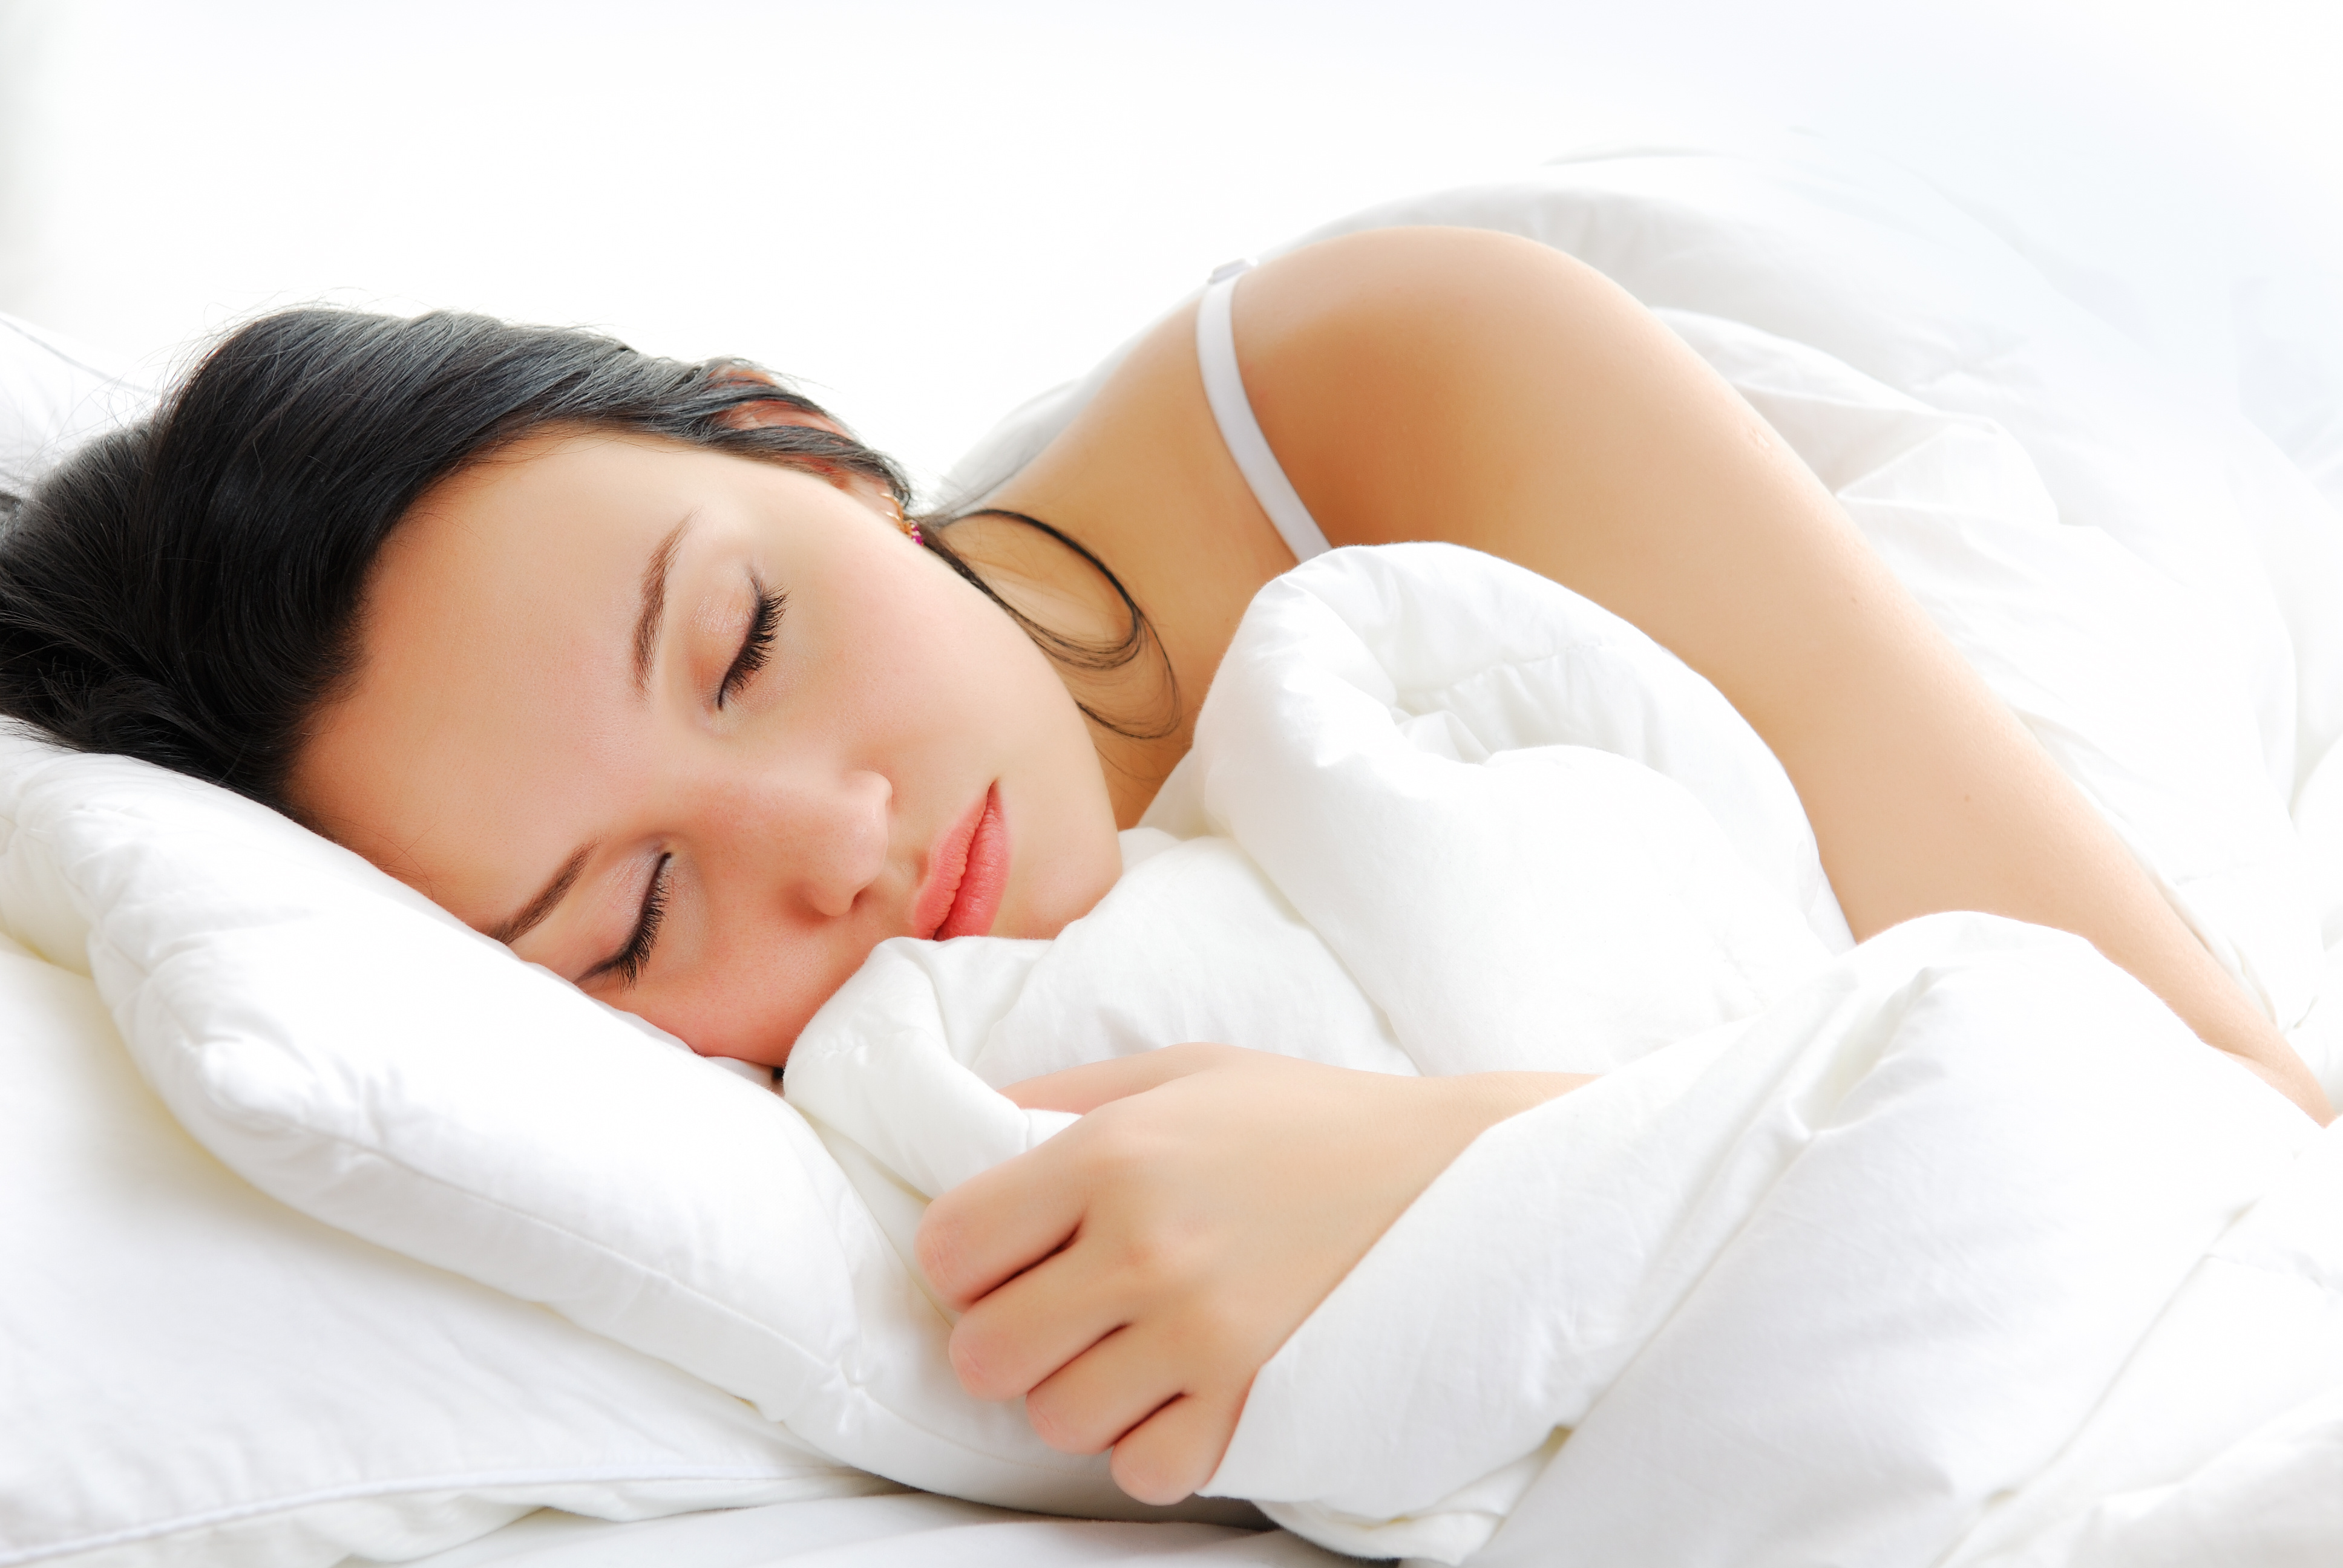 Beautiful woman lying and sleep on the snowy bed. How to Get More Sleep at College   SiOWfa16  Science in Our World